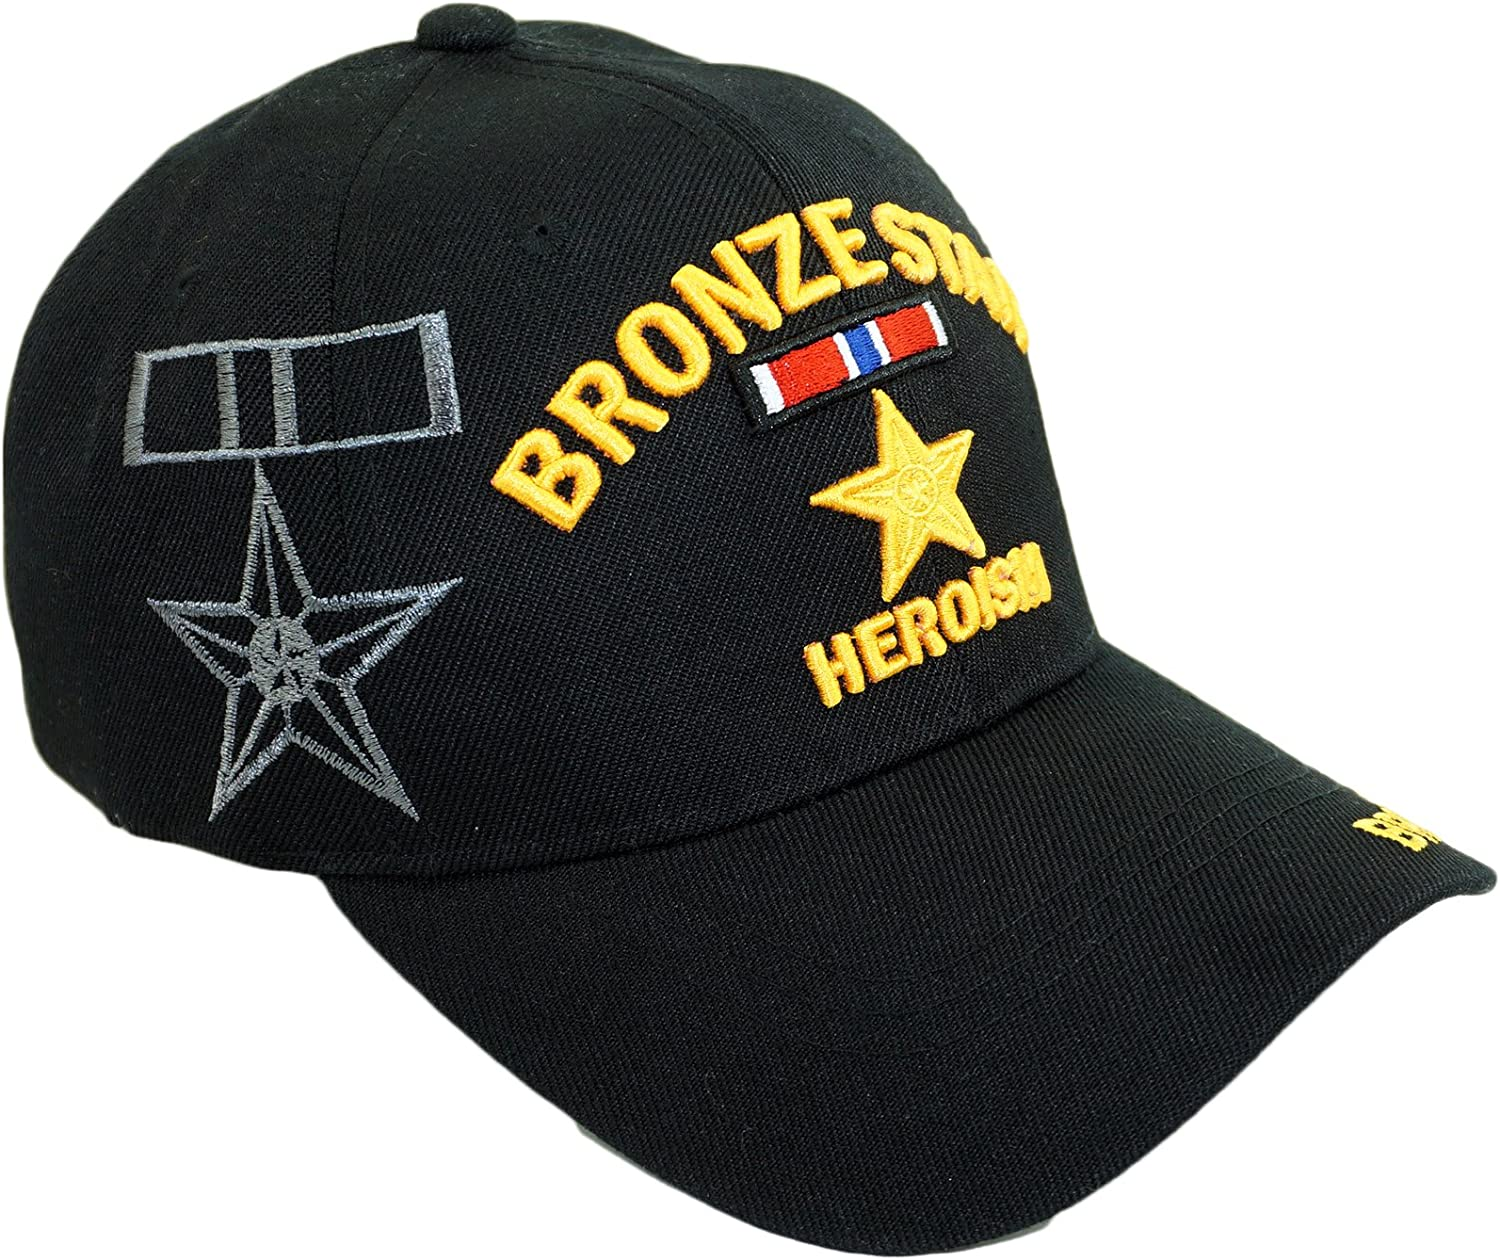 U.S. Military Official Max 66% OFF Licensed Embroidery Fees free!! Navy Hat Army Veteran